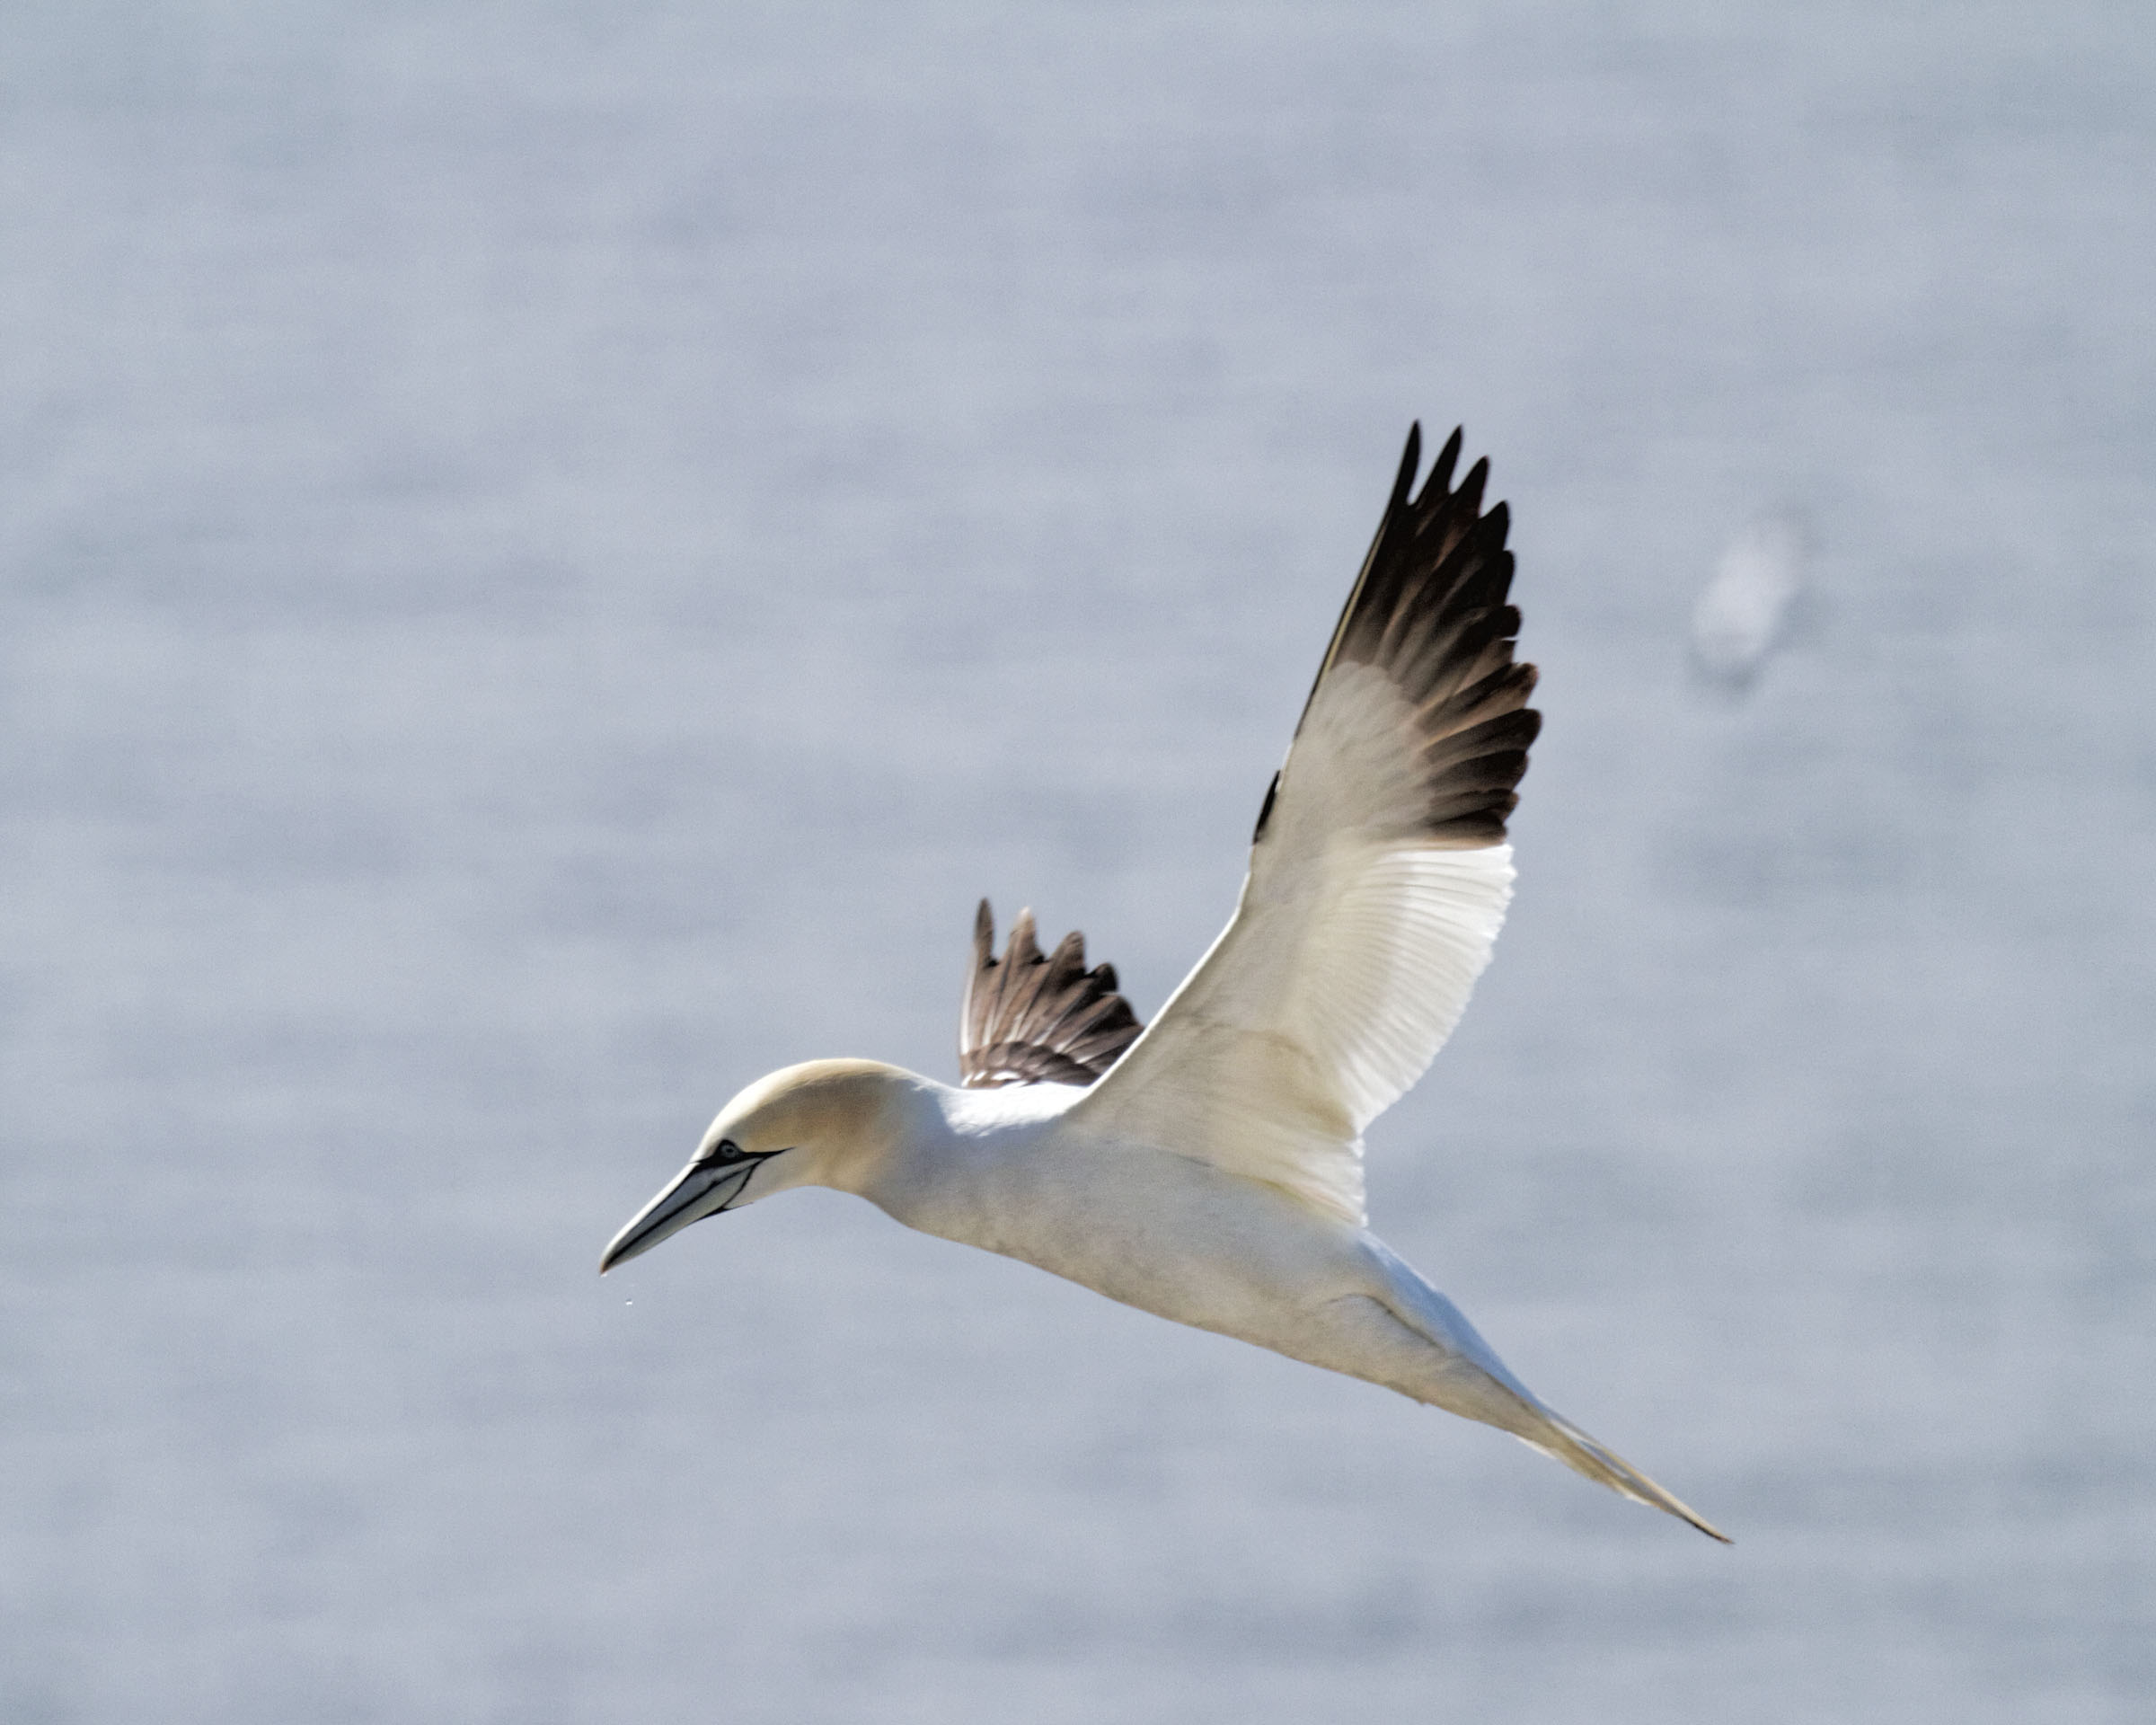 Gannet photo